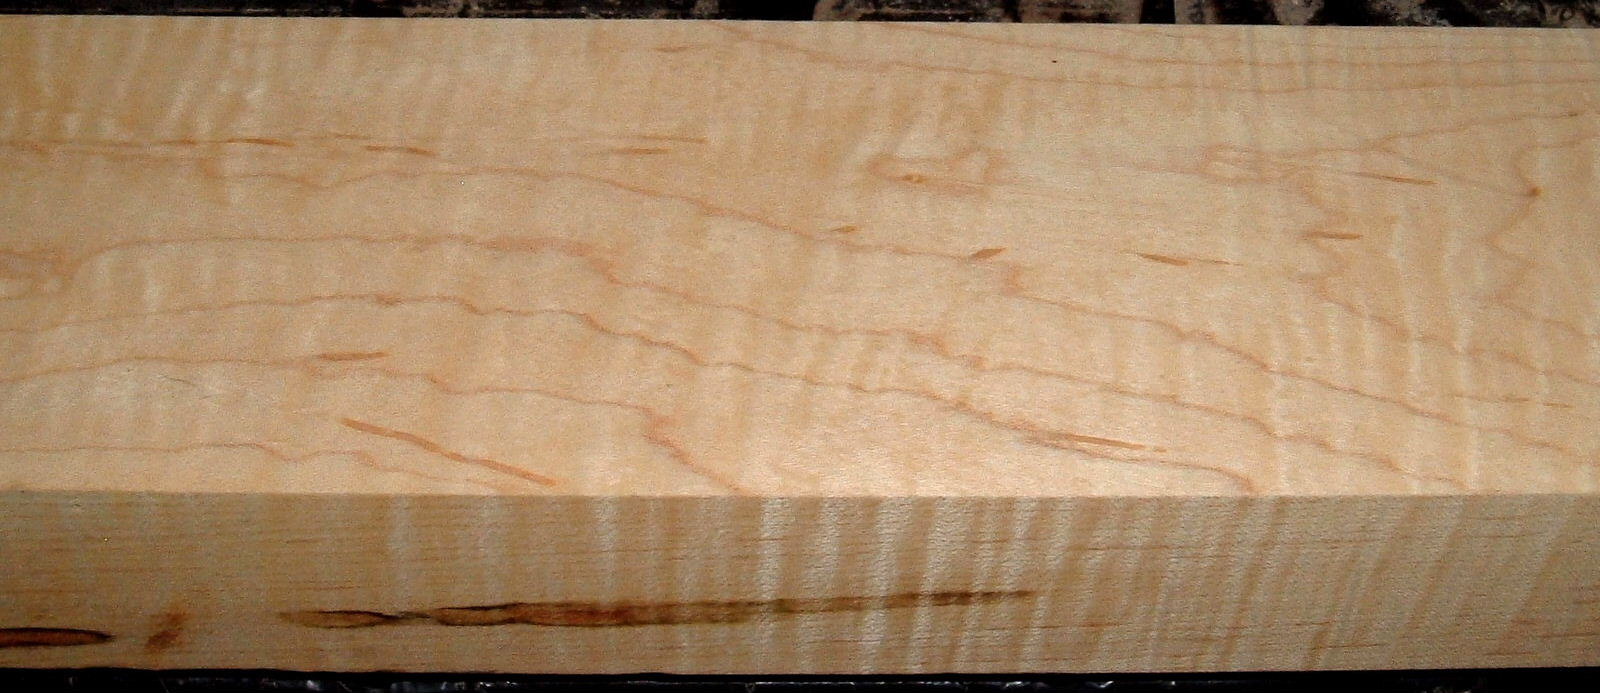 HM1905-74, 1-15/16x4-1/4x30, Curly Tiger Hard Maple